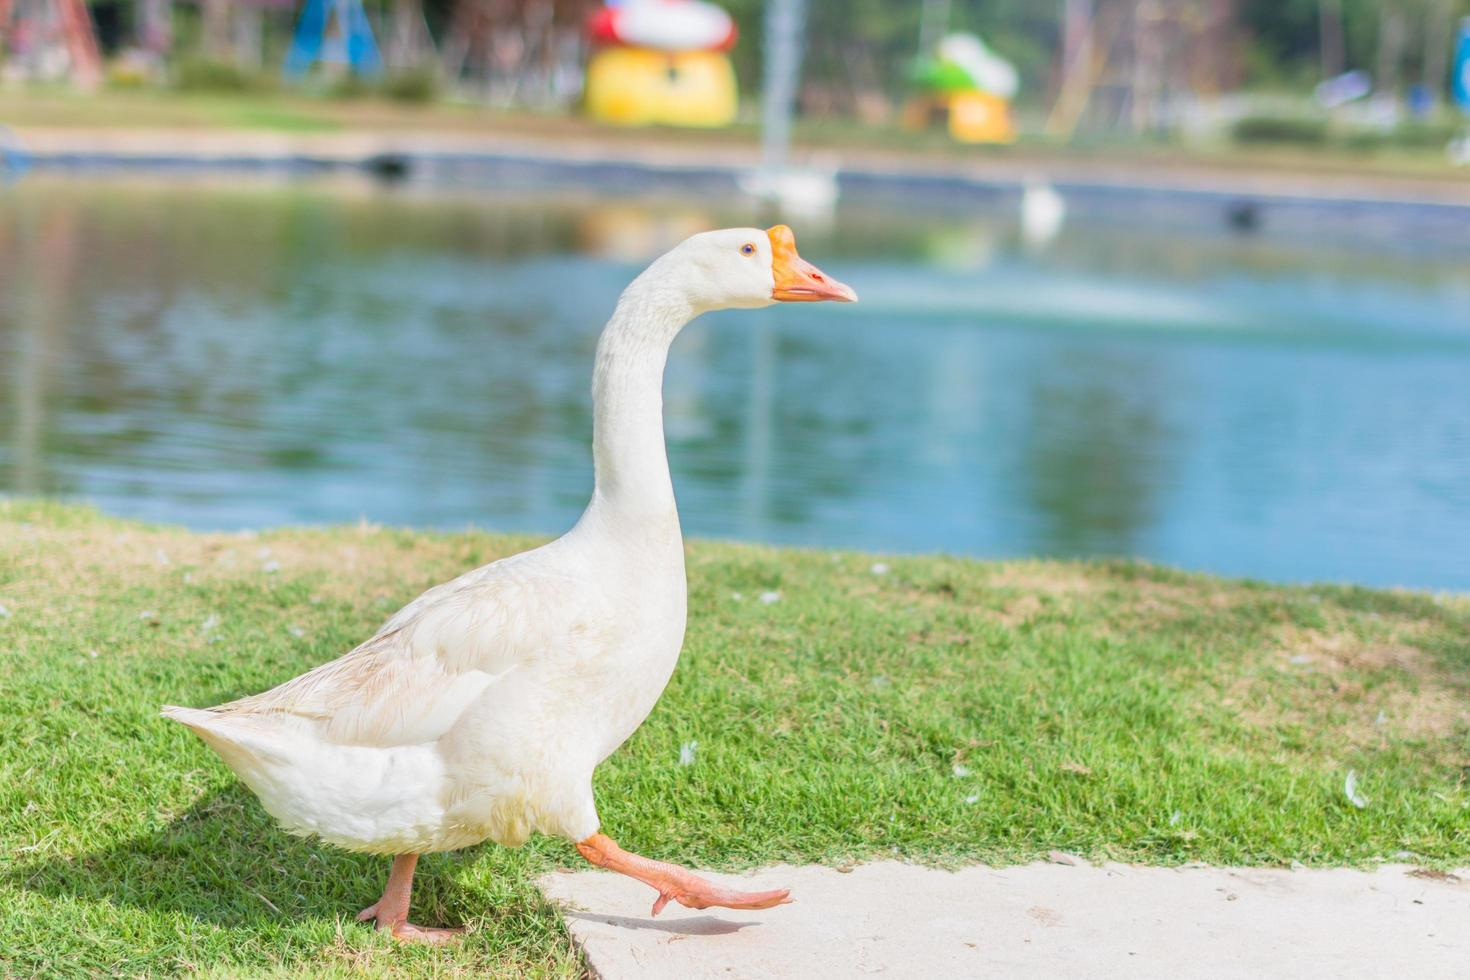 Goose in a zoo photo